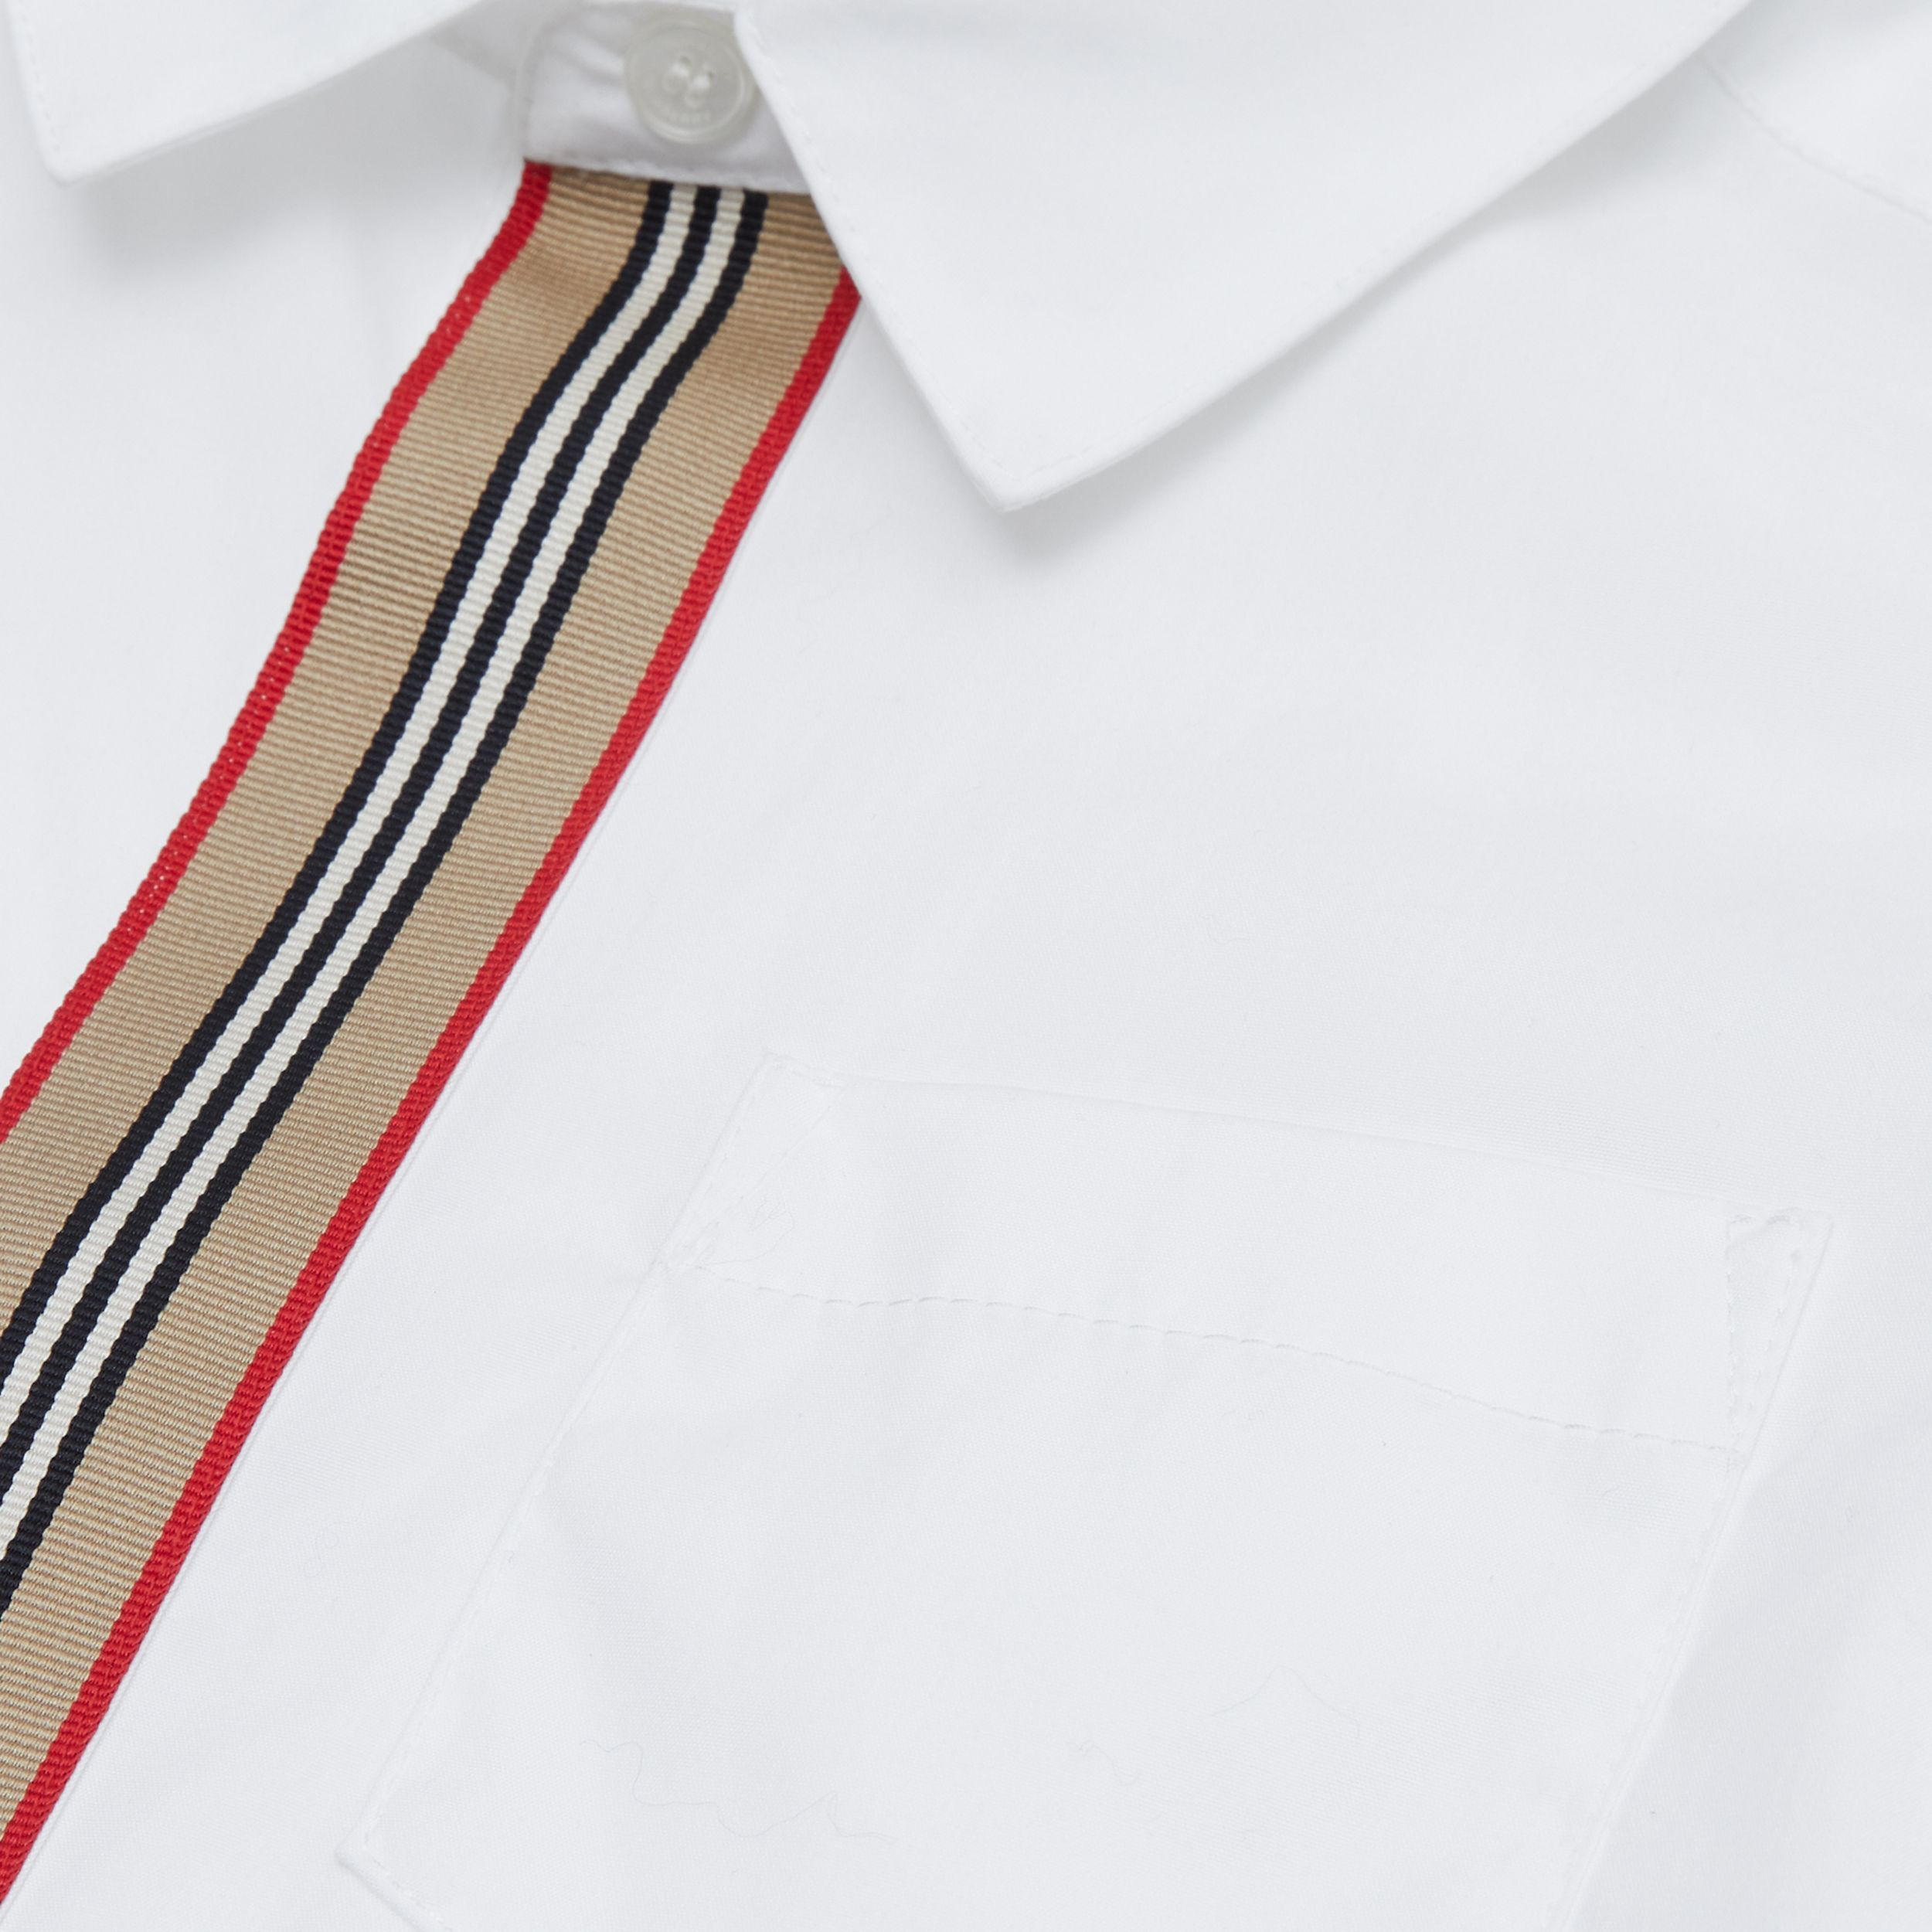 Icon Stripe Trim Stretch Cotton Shirt in White | Burberry - 2